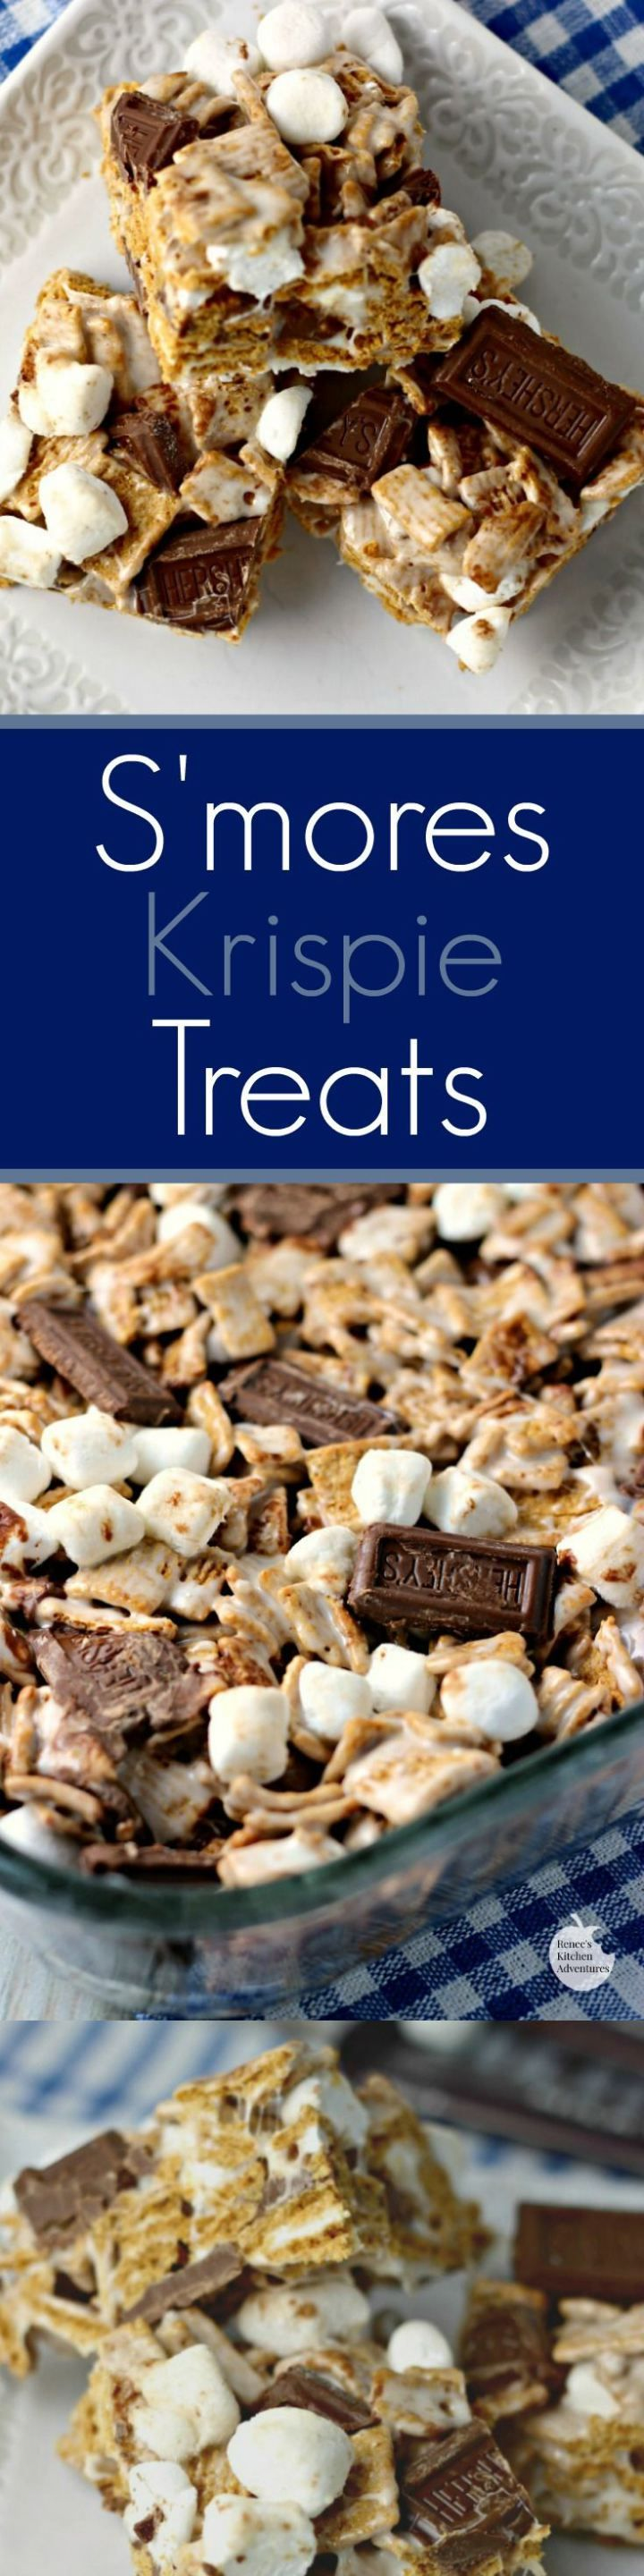 S'mores Krispie Treats - Need a quick and easy take along dessert for your holiday festivities this weekend?